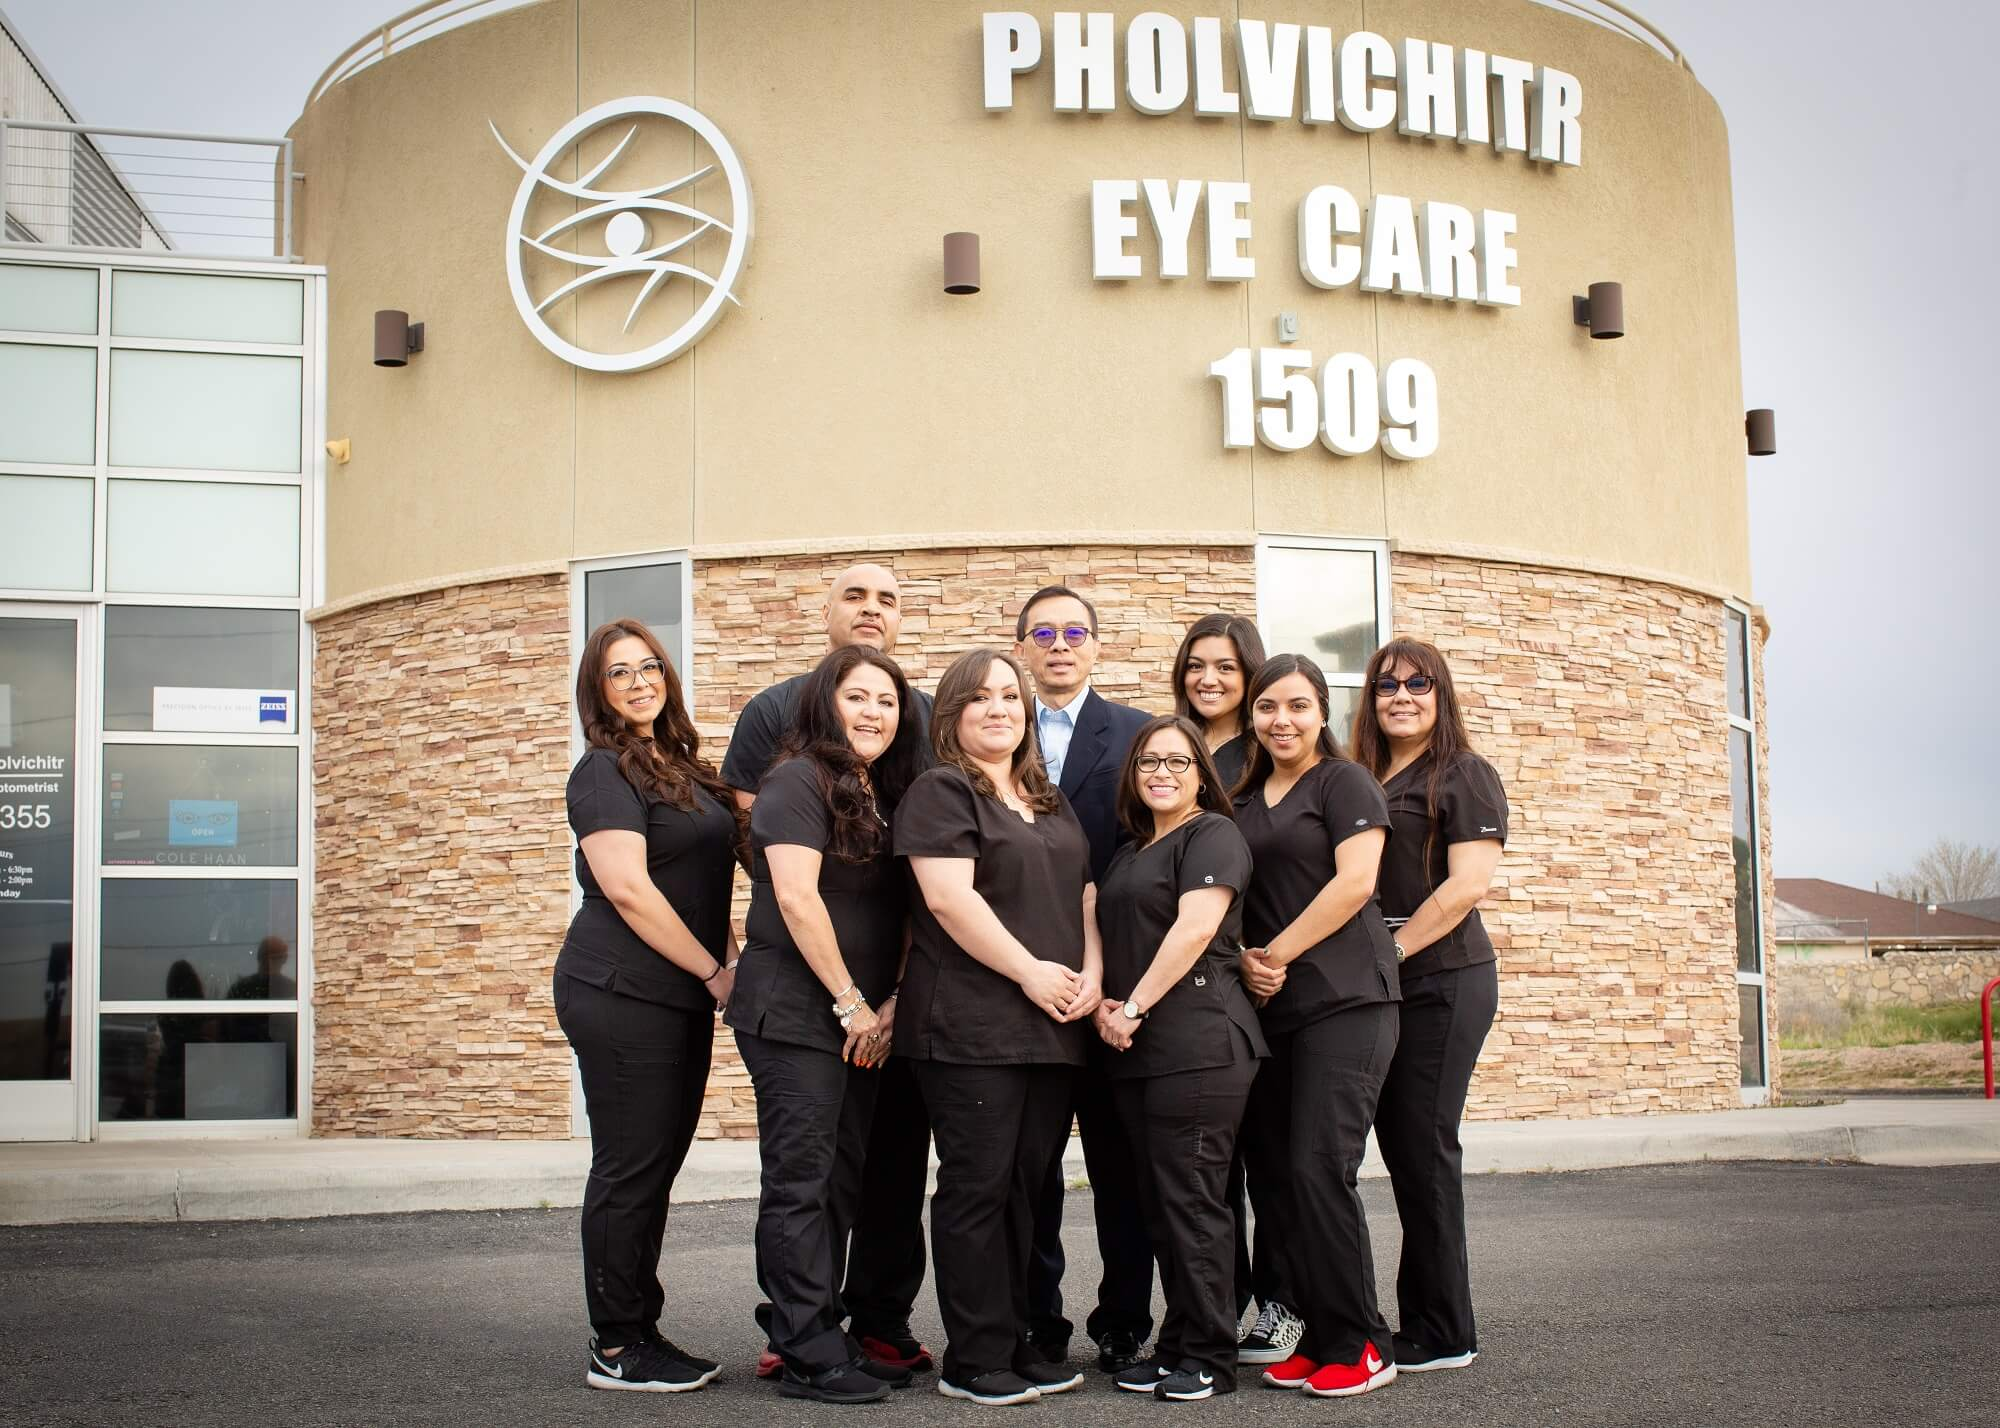 our optometry practice